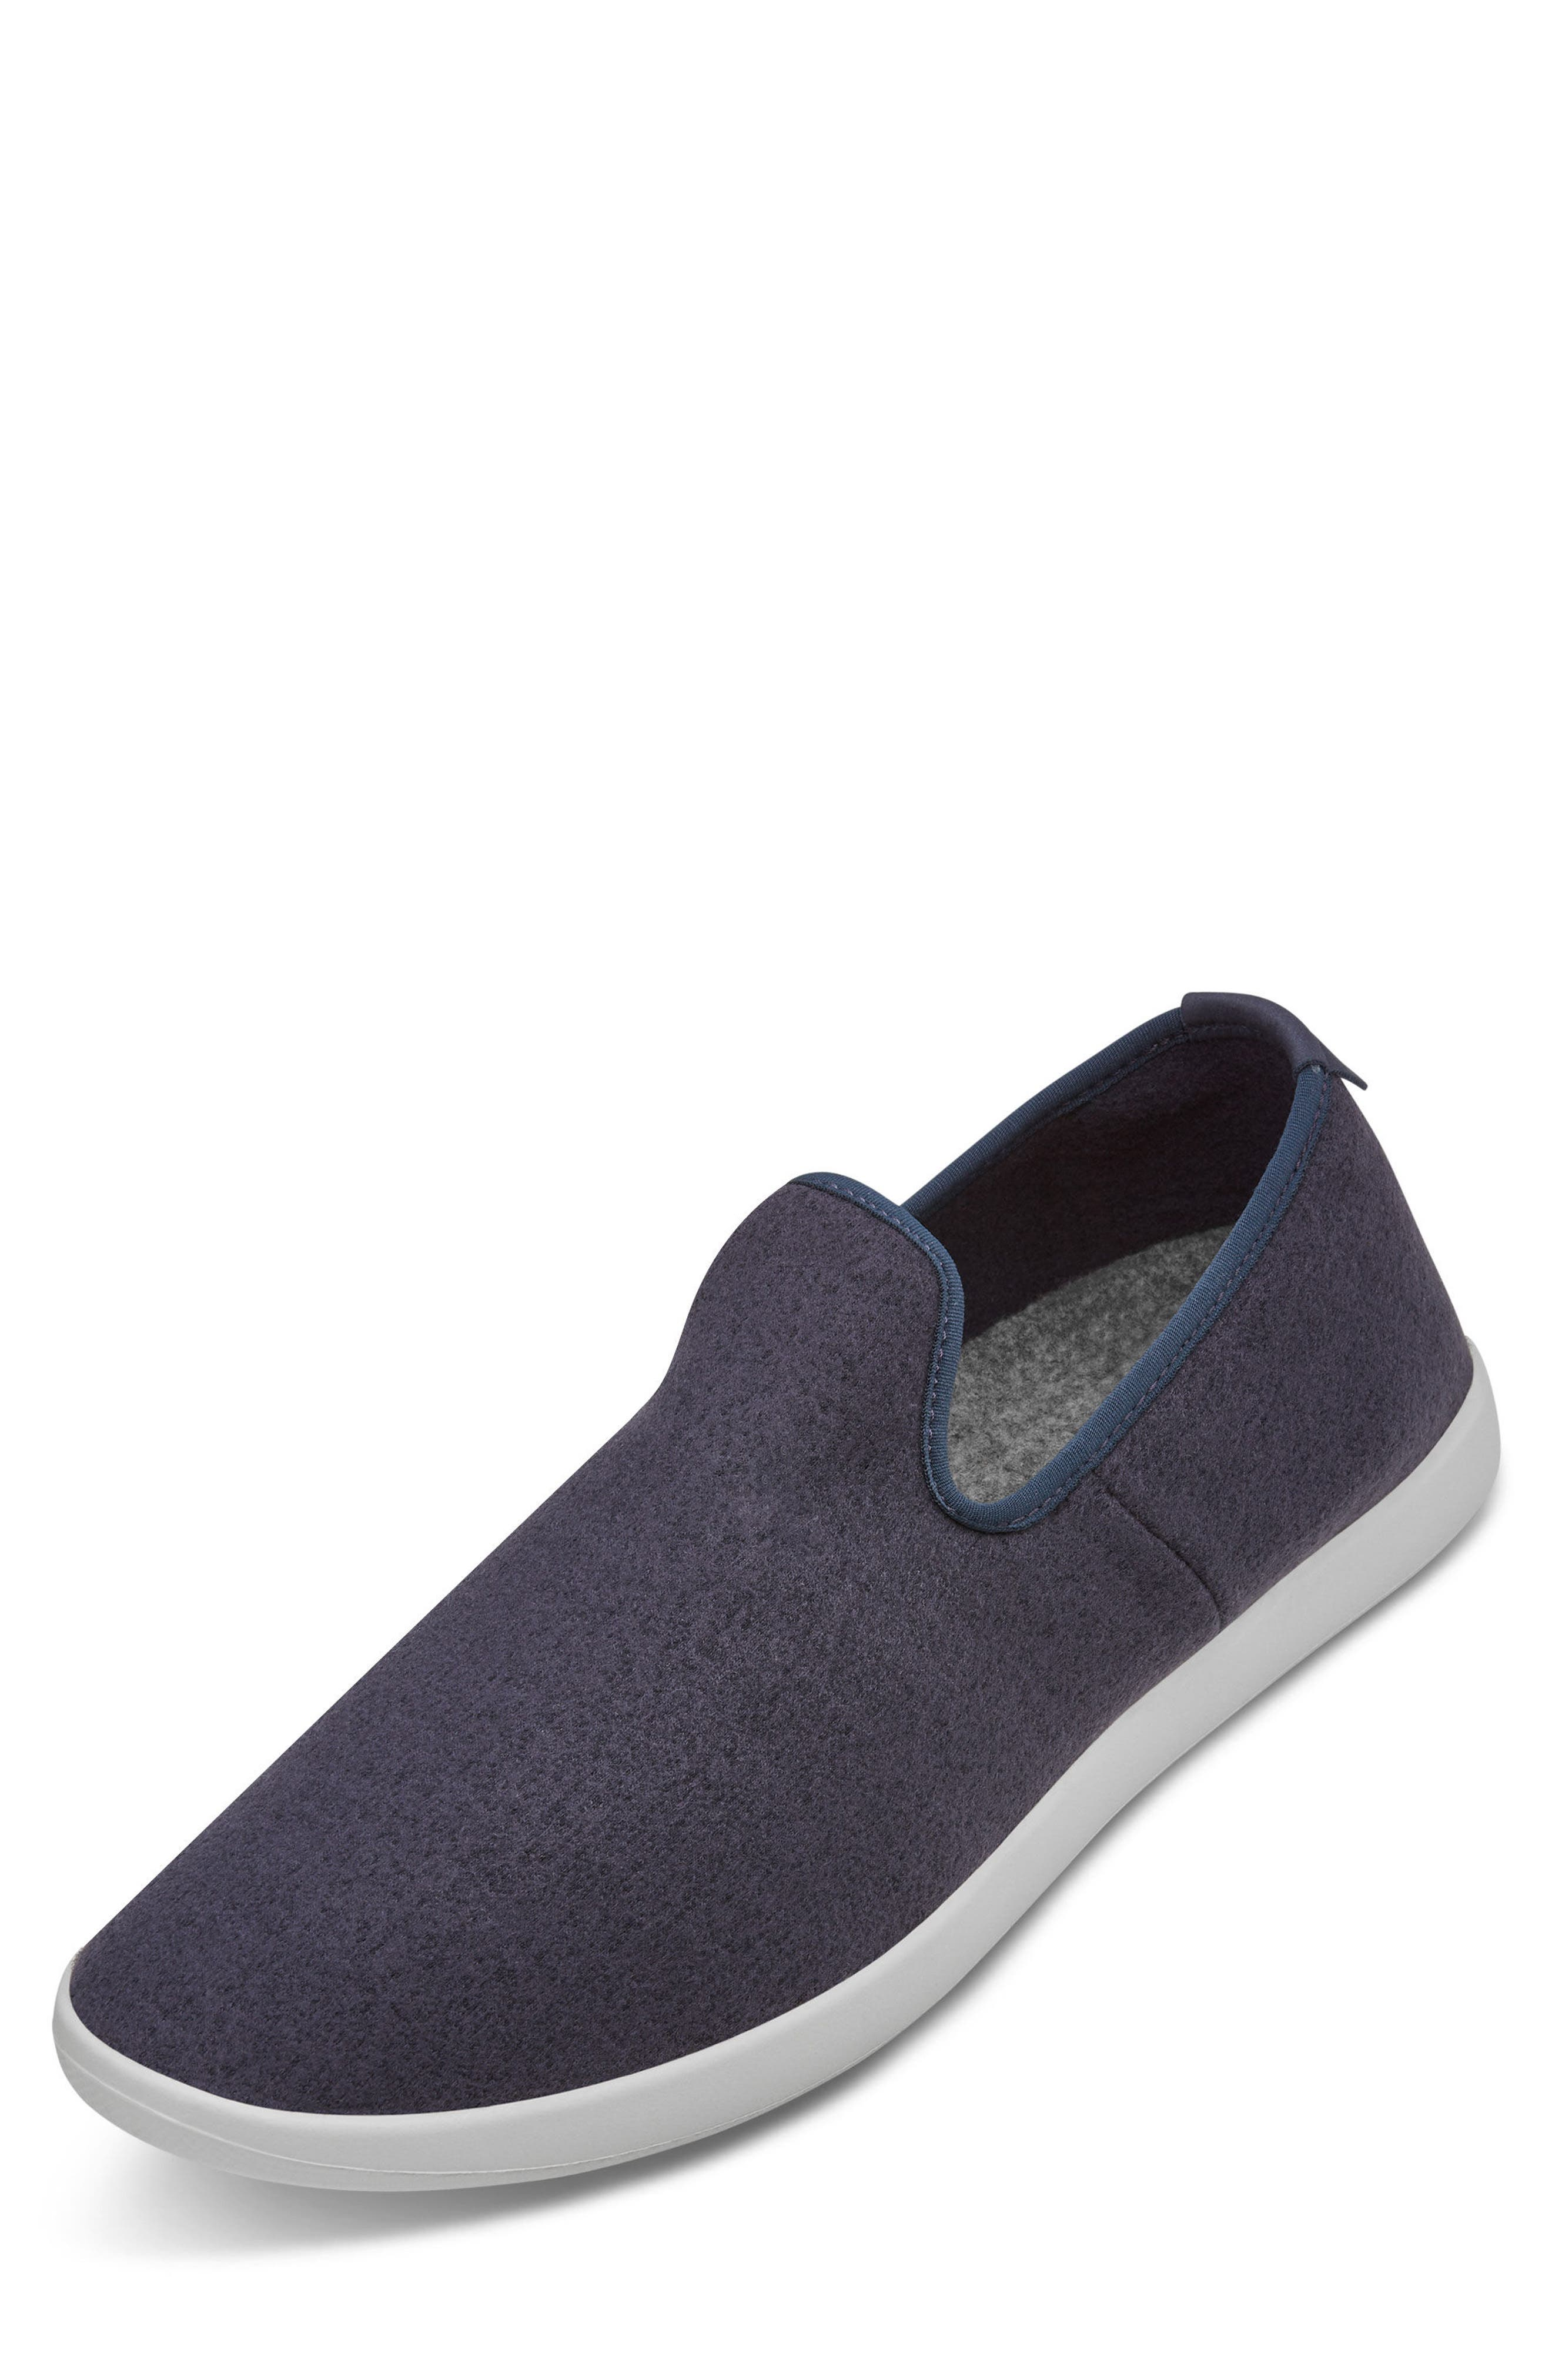 Wool Lounger,                         Main,                         color, Midnight